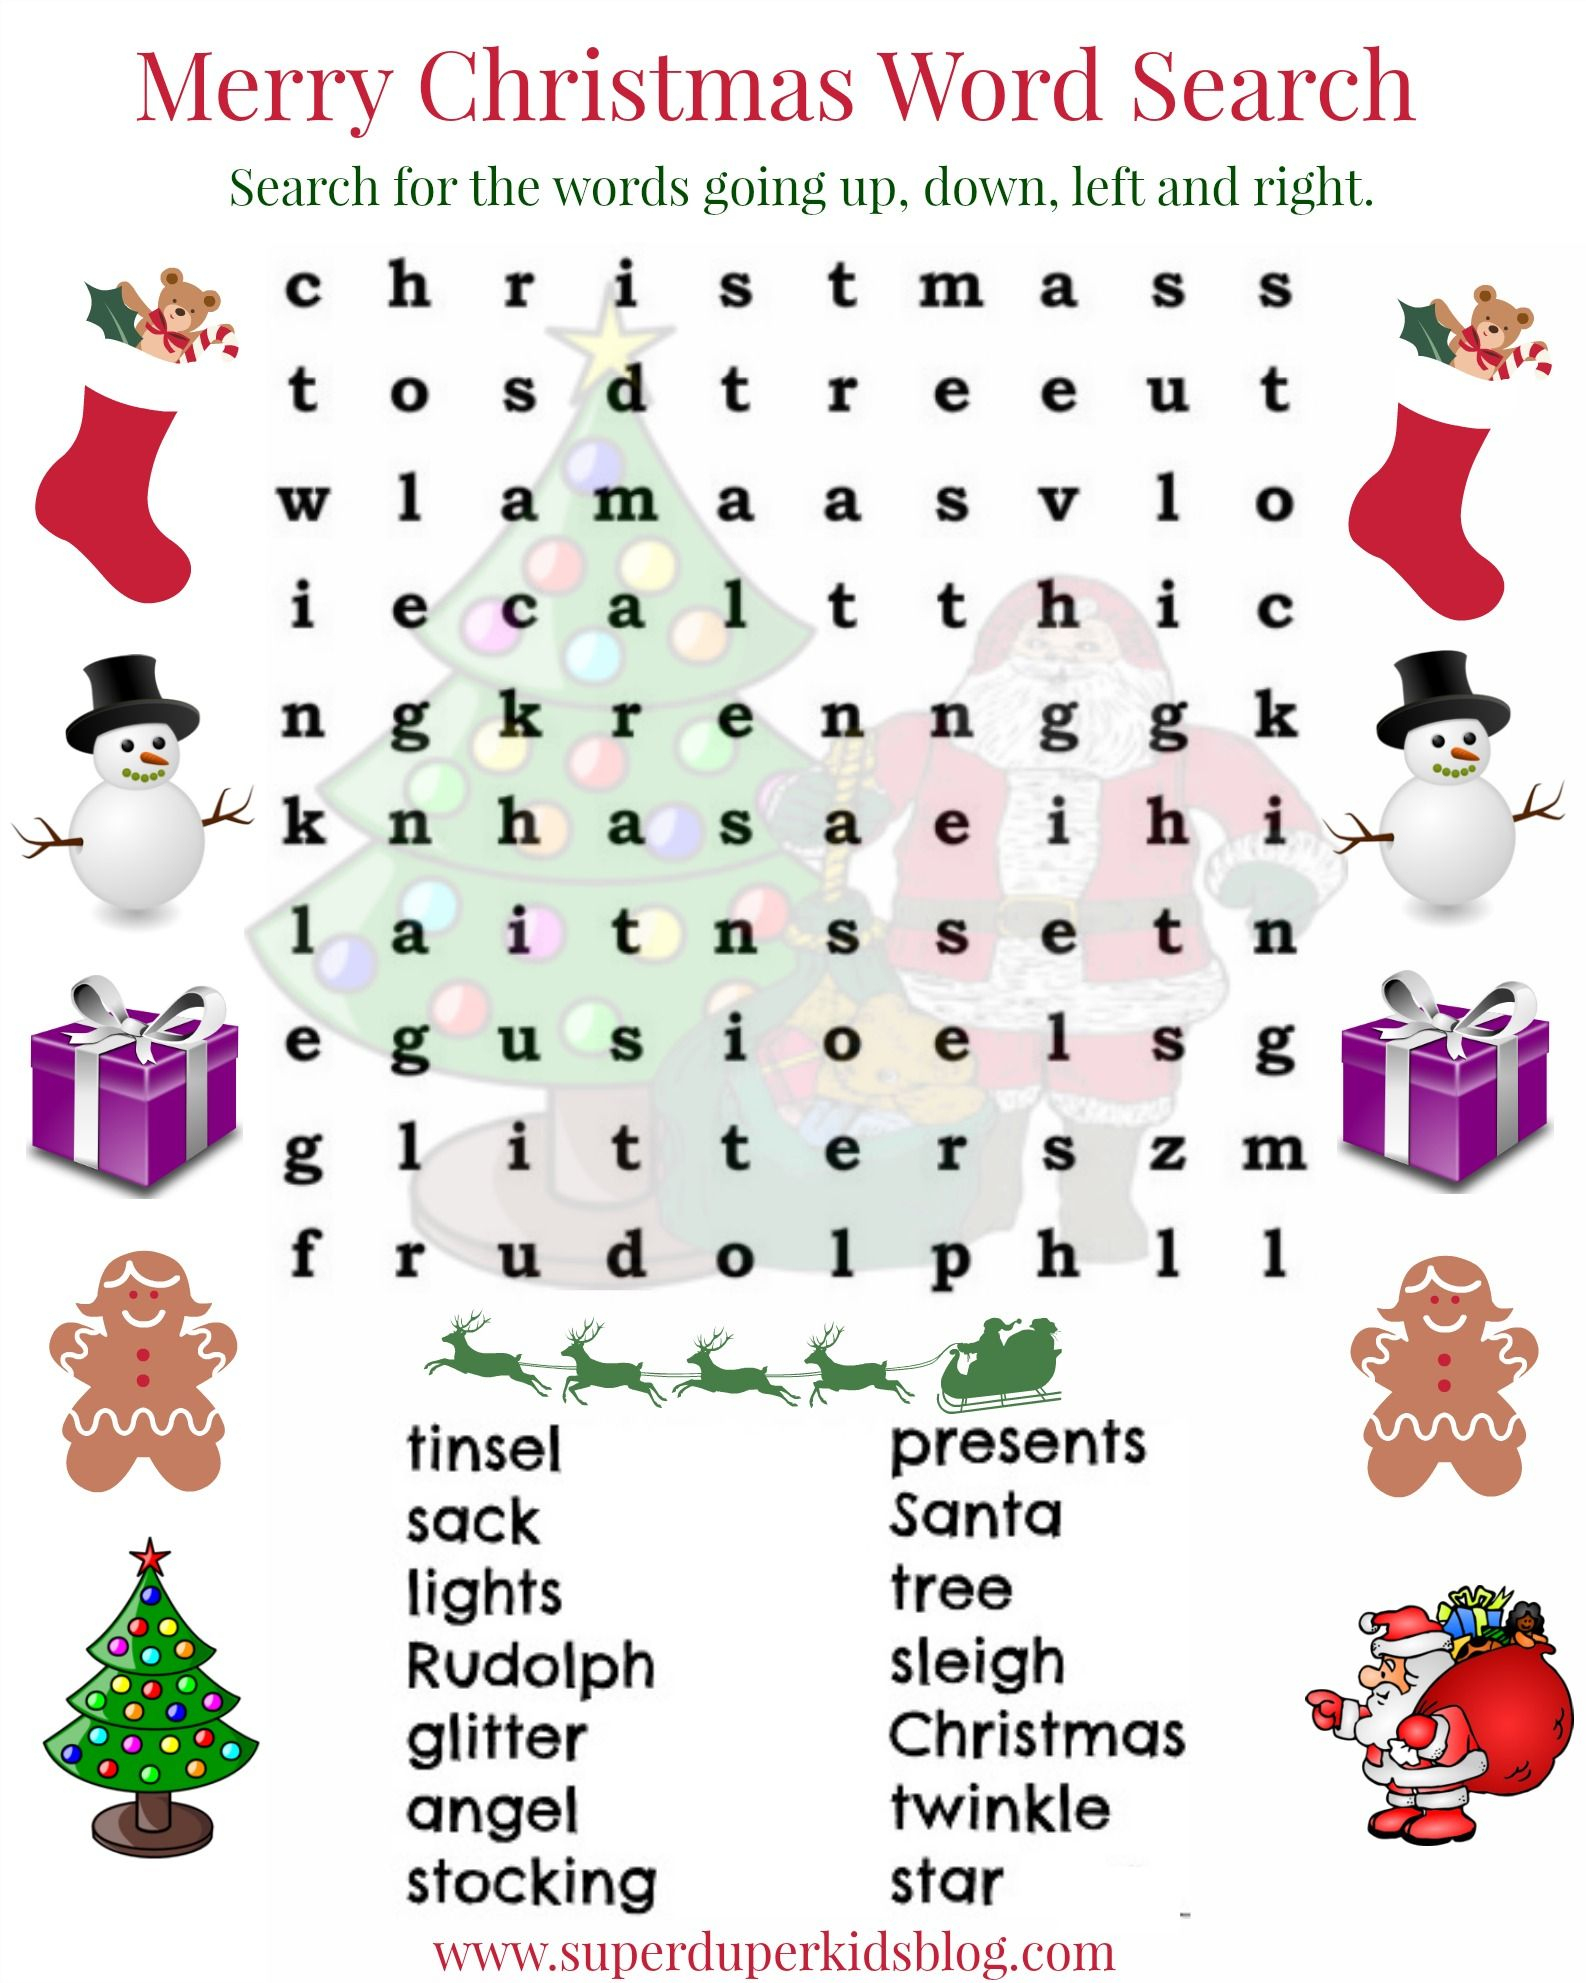 Pinalicia Weibley On Alicia   Christmas Word Search